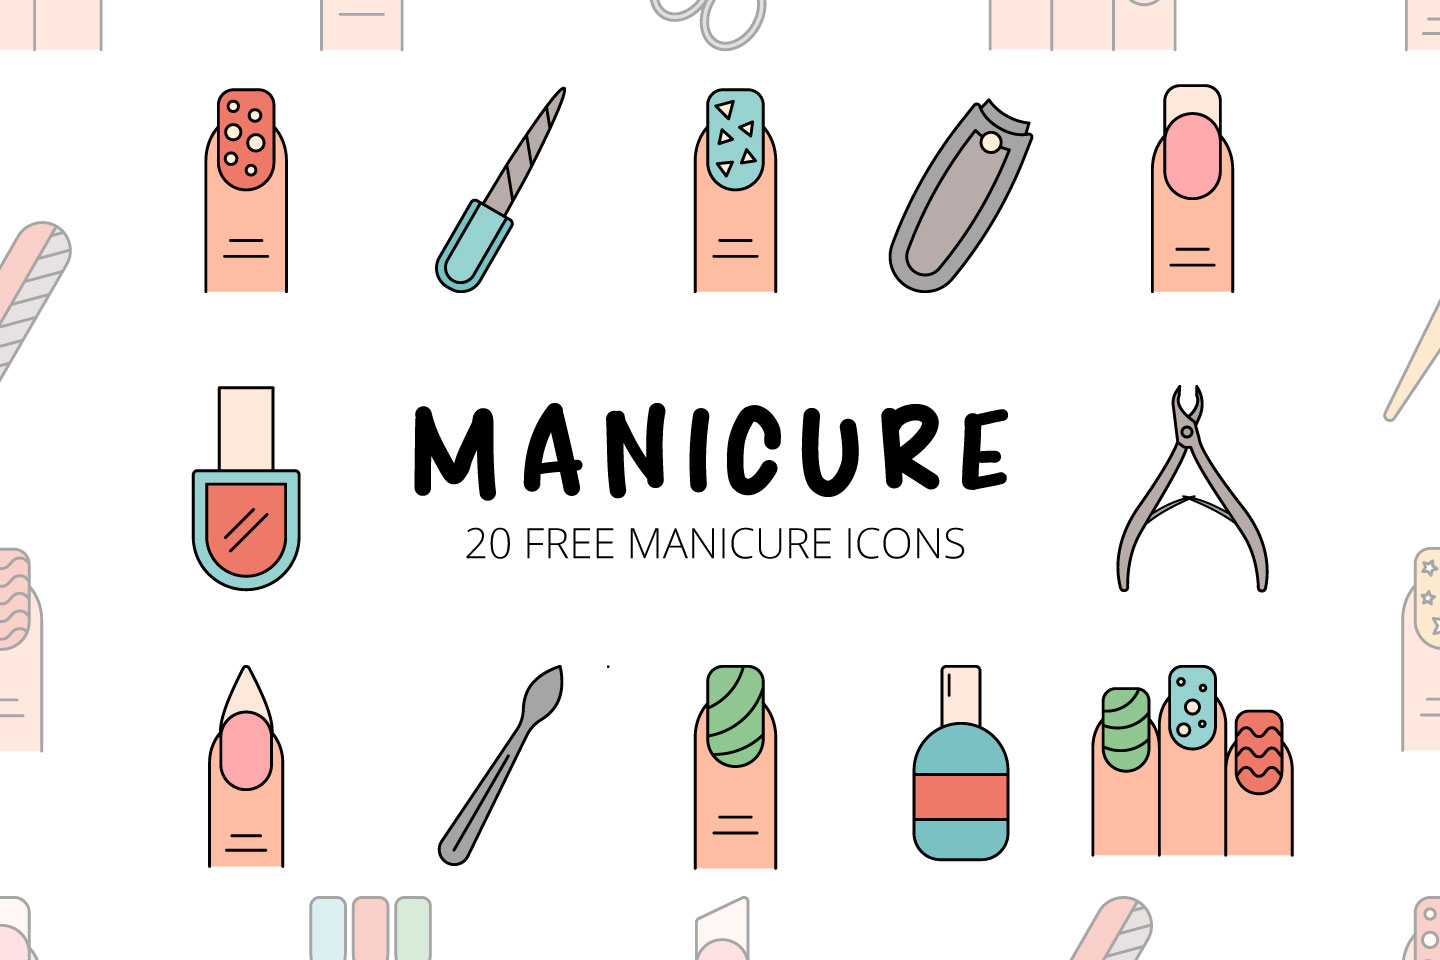 Manicure Vector Free Icon Set скачать